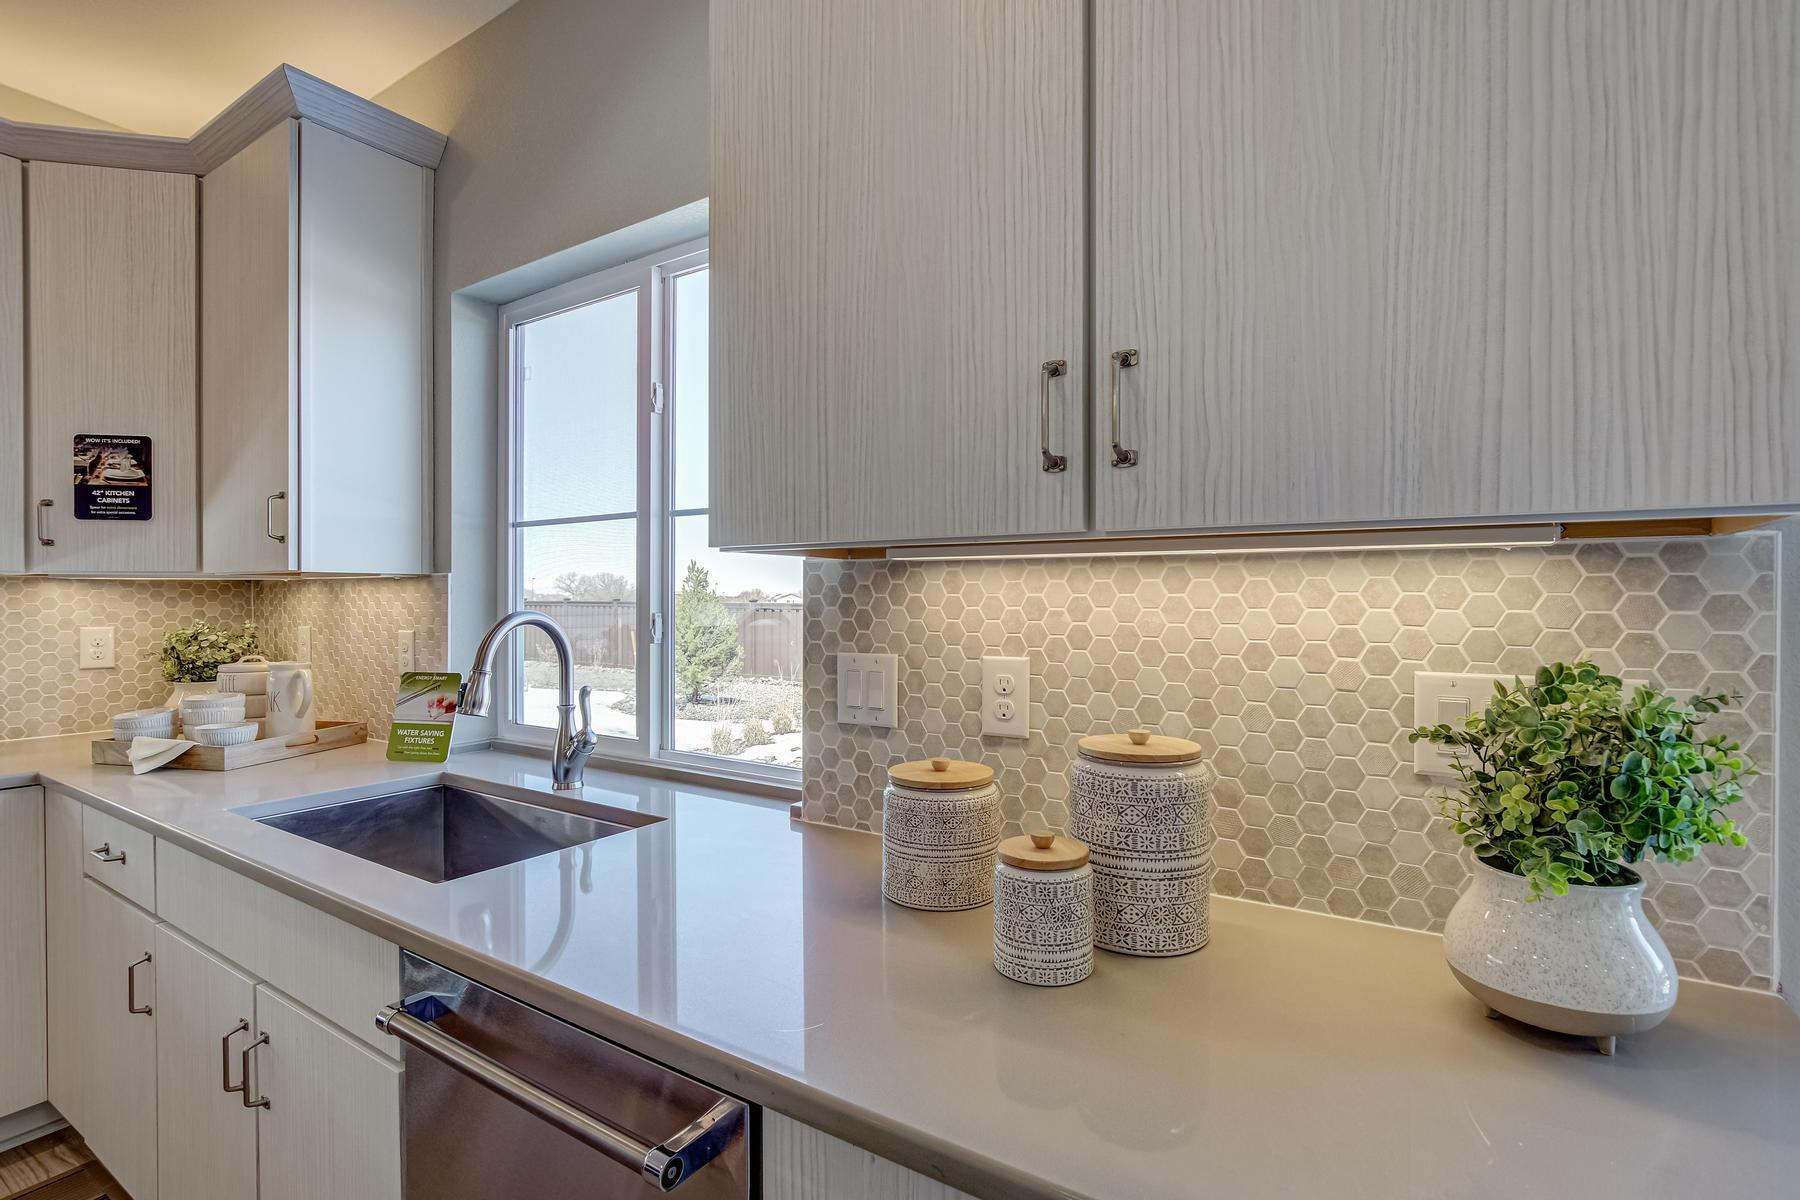 Kitchen featured in the  Branson  By Oakwood Homes Colorado in Denver, CO